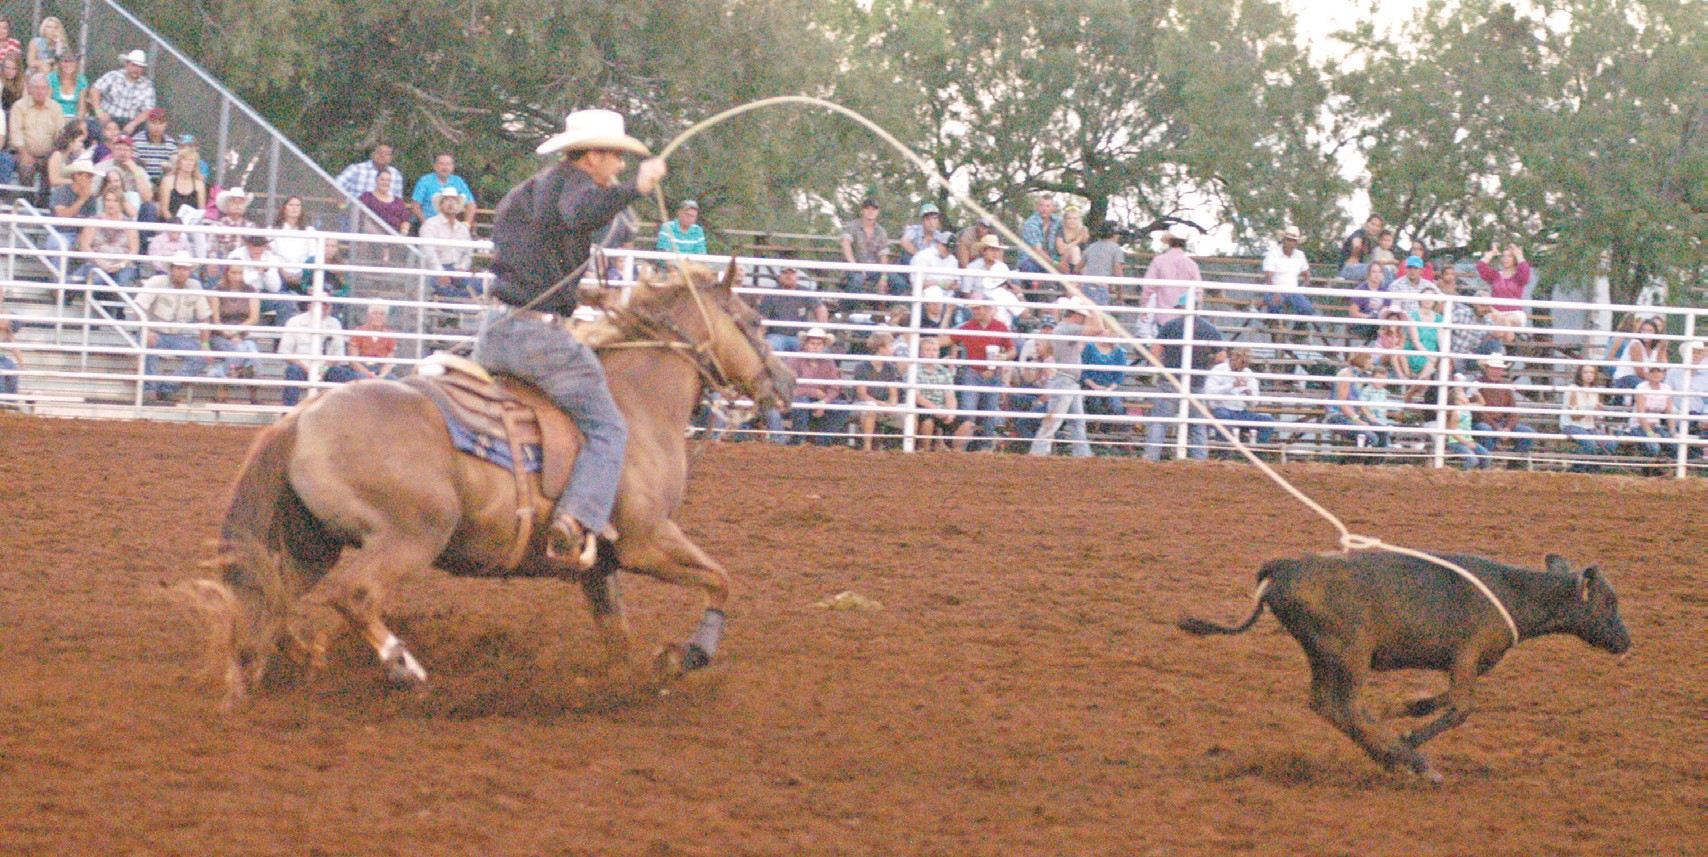 Calf roping is just one of many events cowboys will compete in during the 2014 Pleasanton Young Farmers Cowboy of the Year Rodeo and Festival. It will be held Friday and Saturday, August 15 and 16 at the Atascosa County Show Barn Arena, 2209 West Oaklawn in Pleasanton.